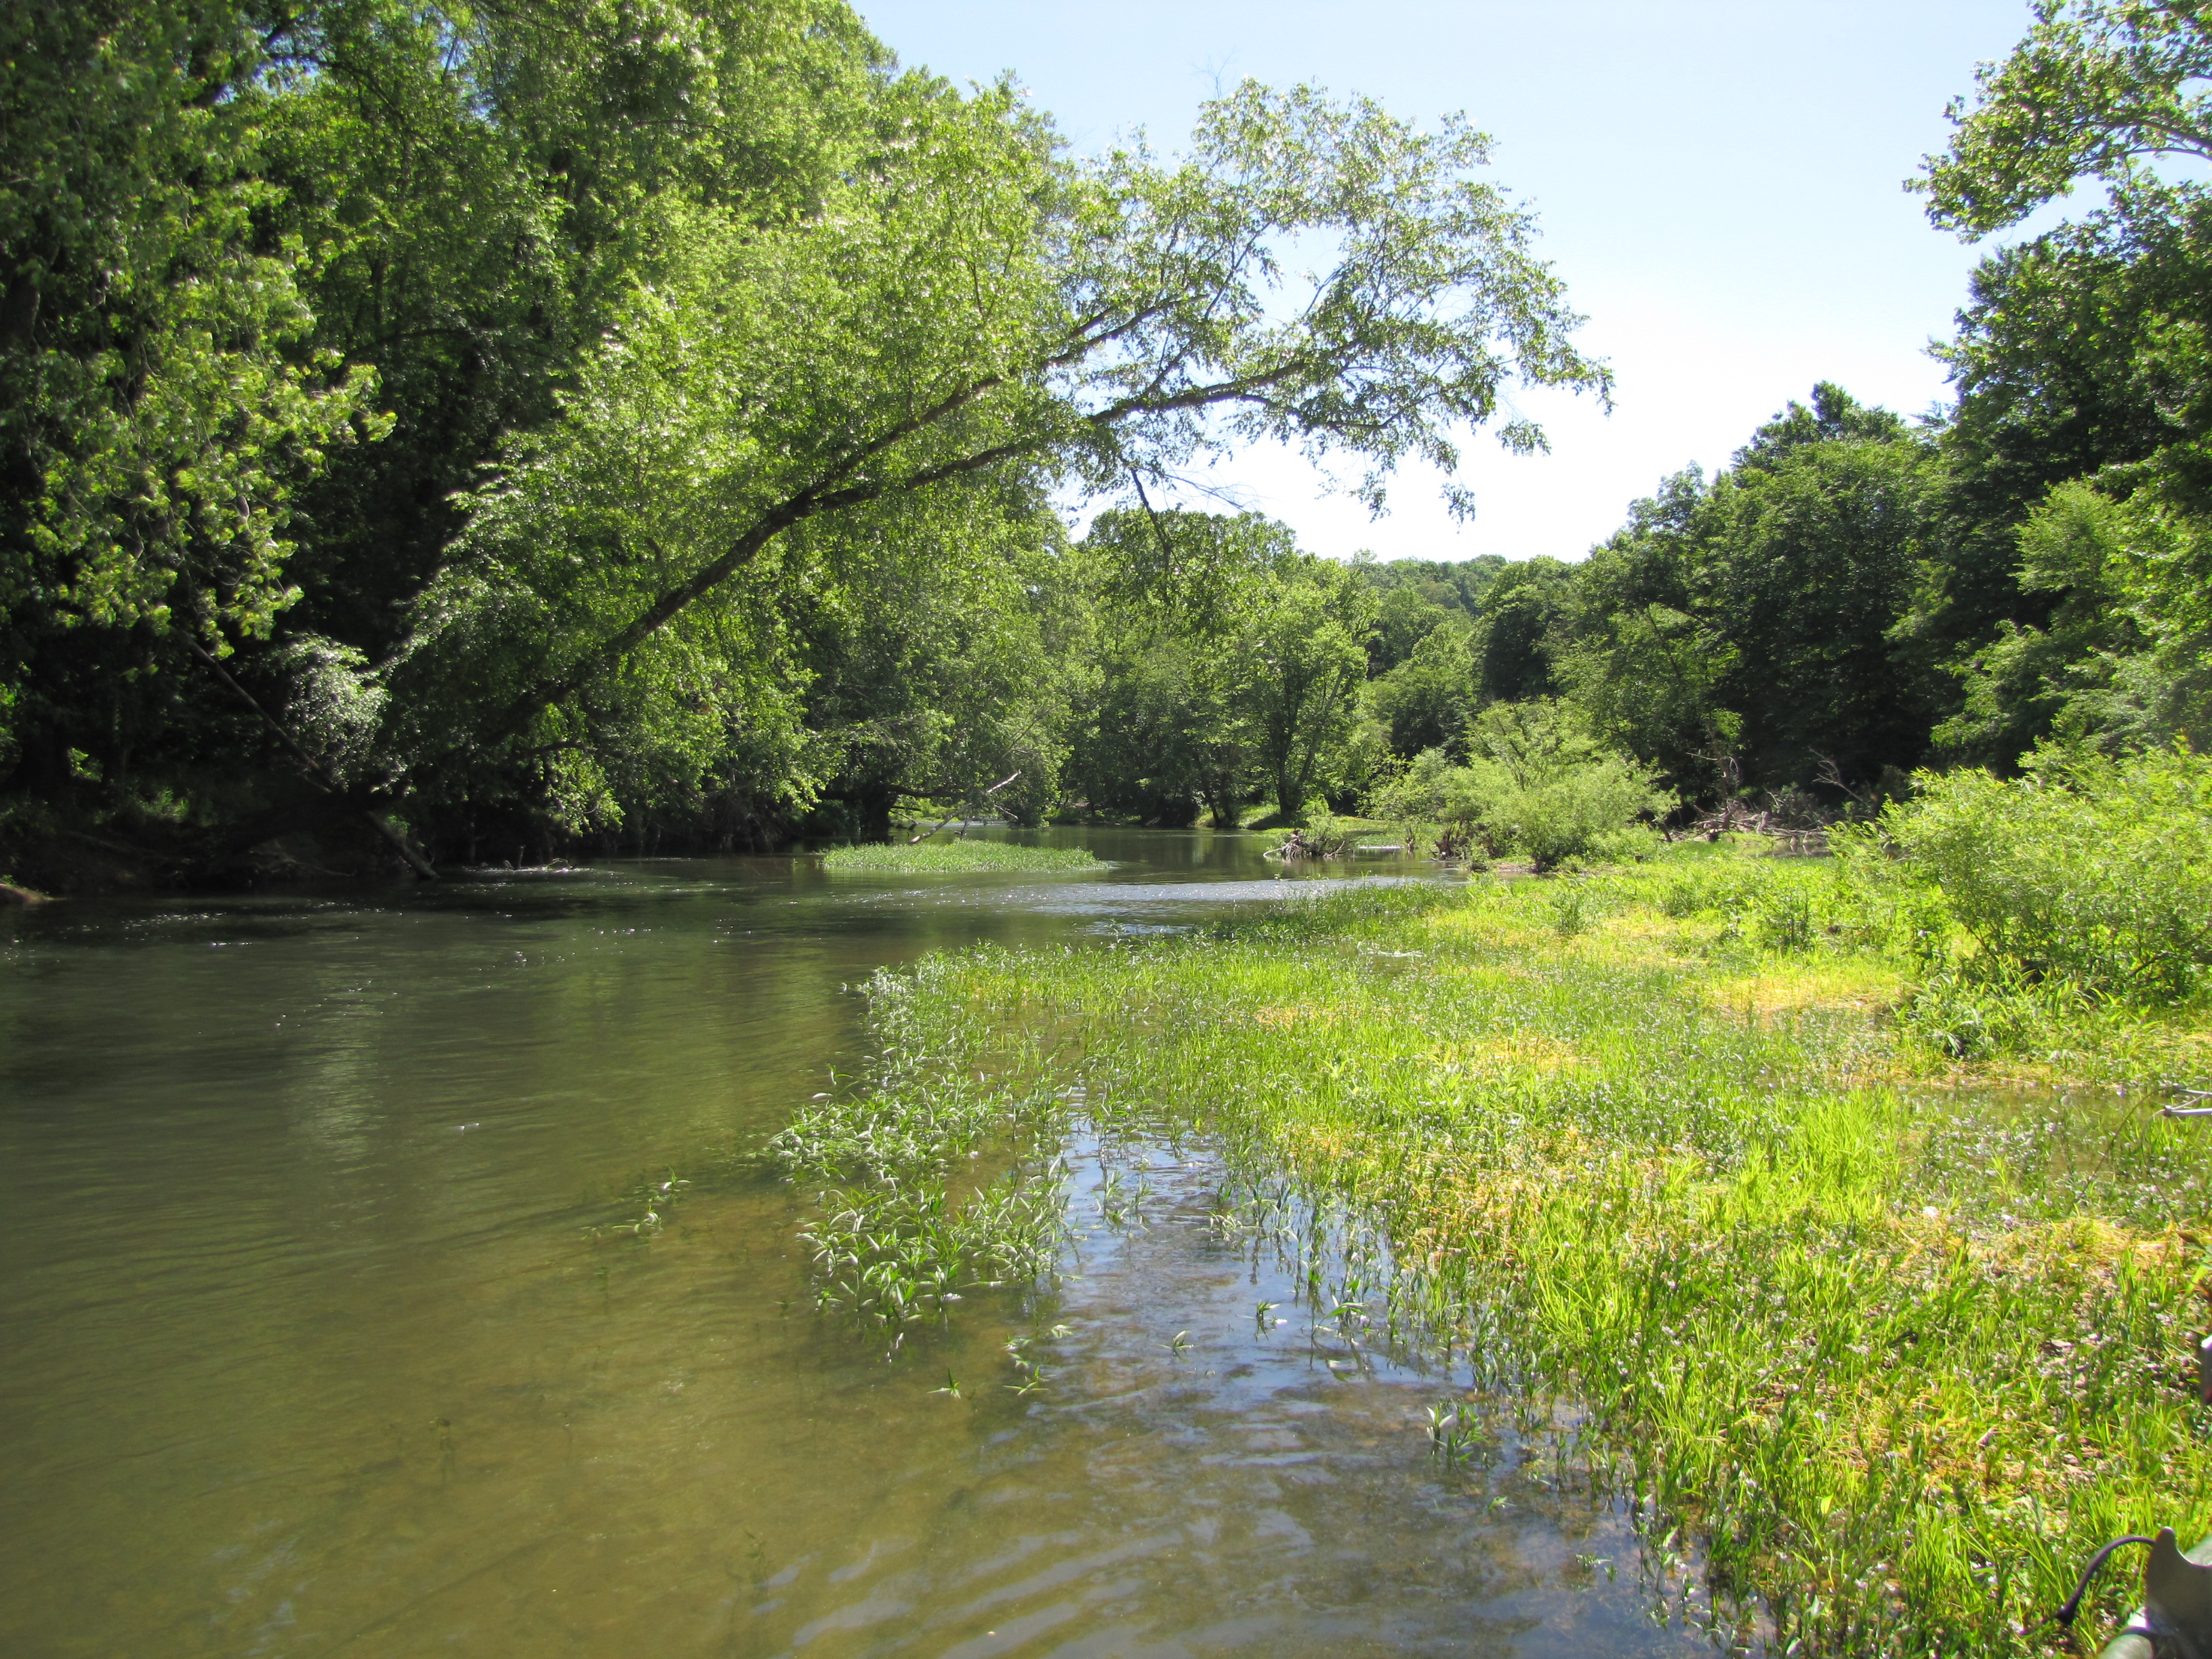 Green River upstream of Roachville Ford is very scenic and offers excellent fishing for smallmouth bass, musky and rock bass.